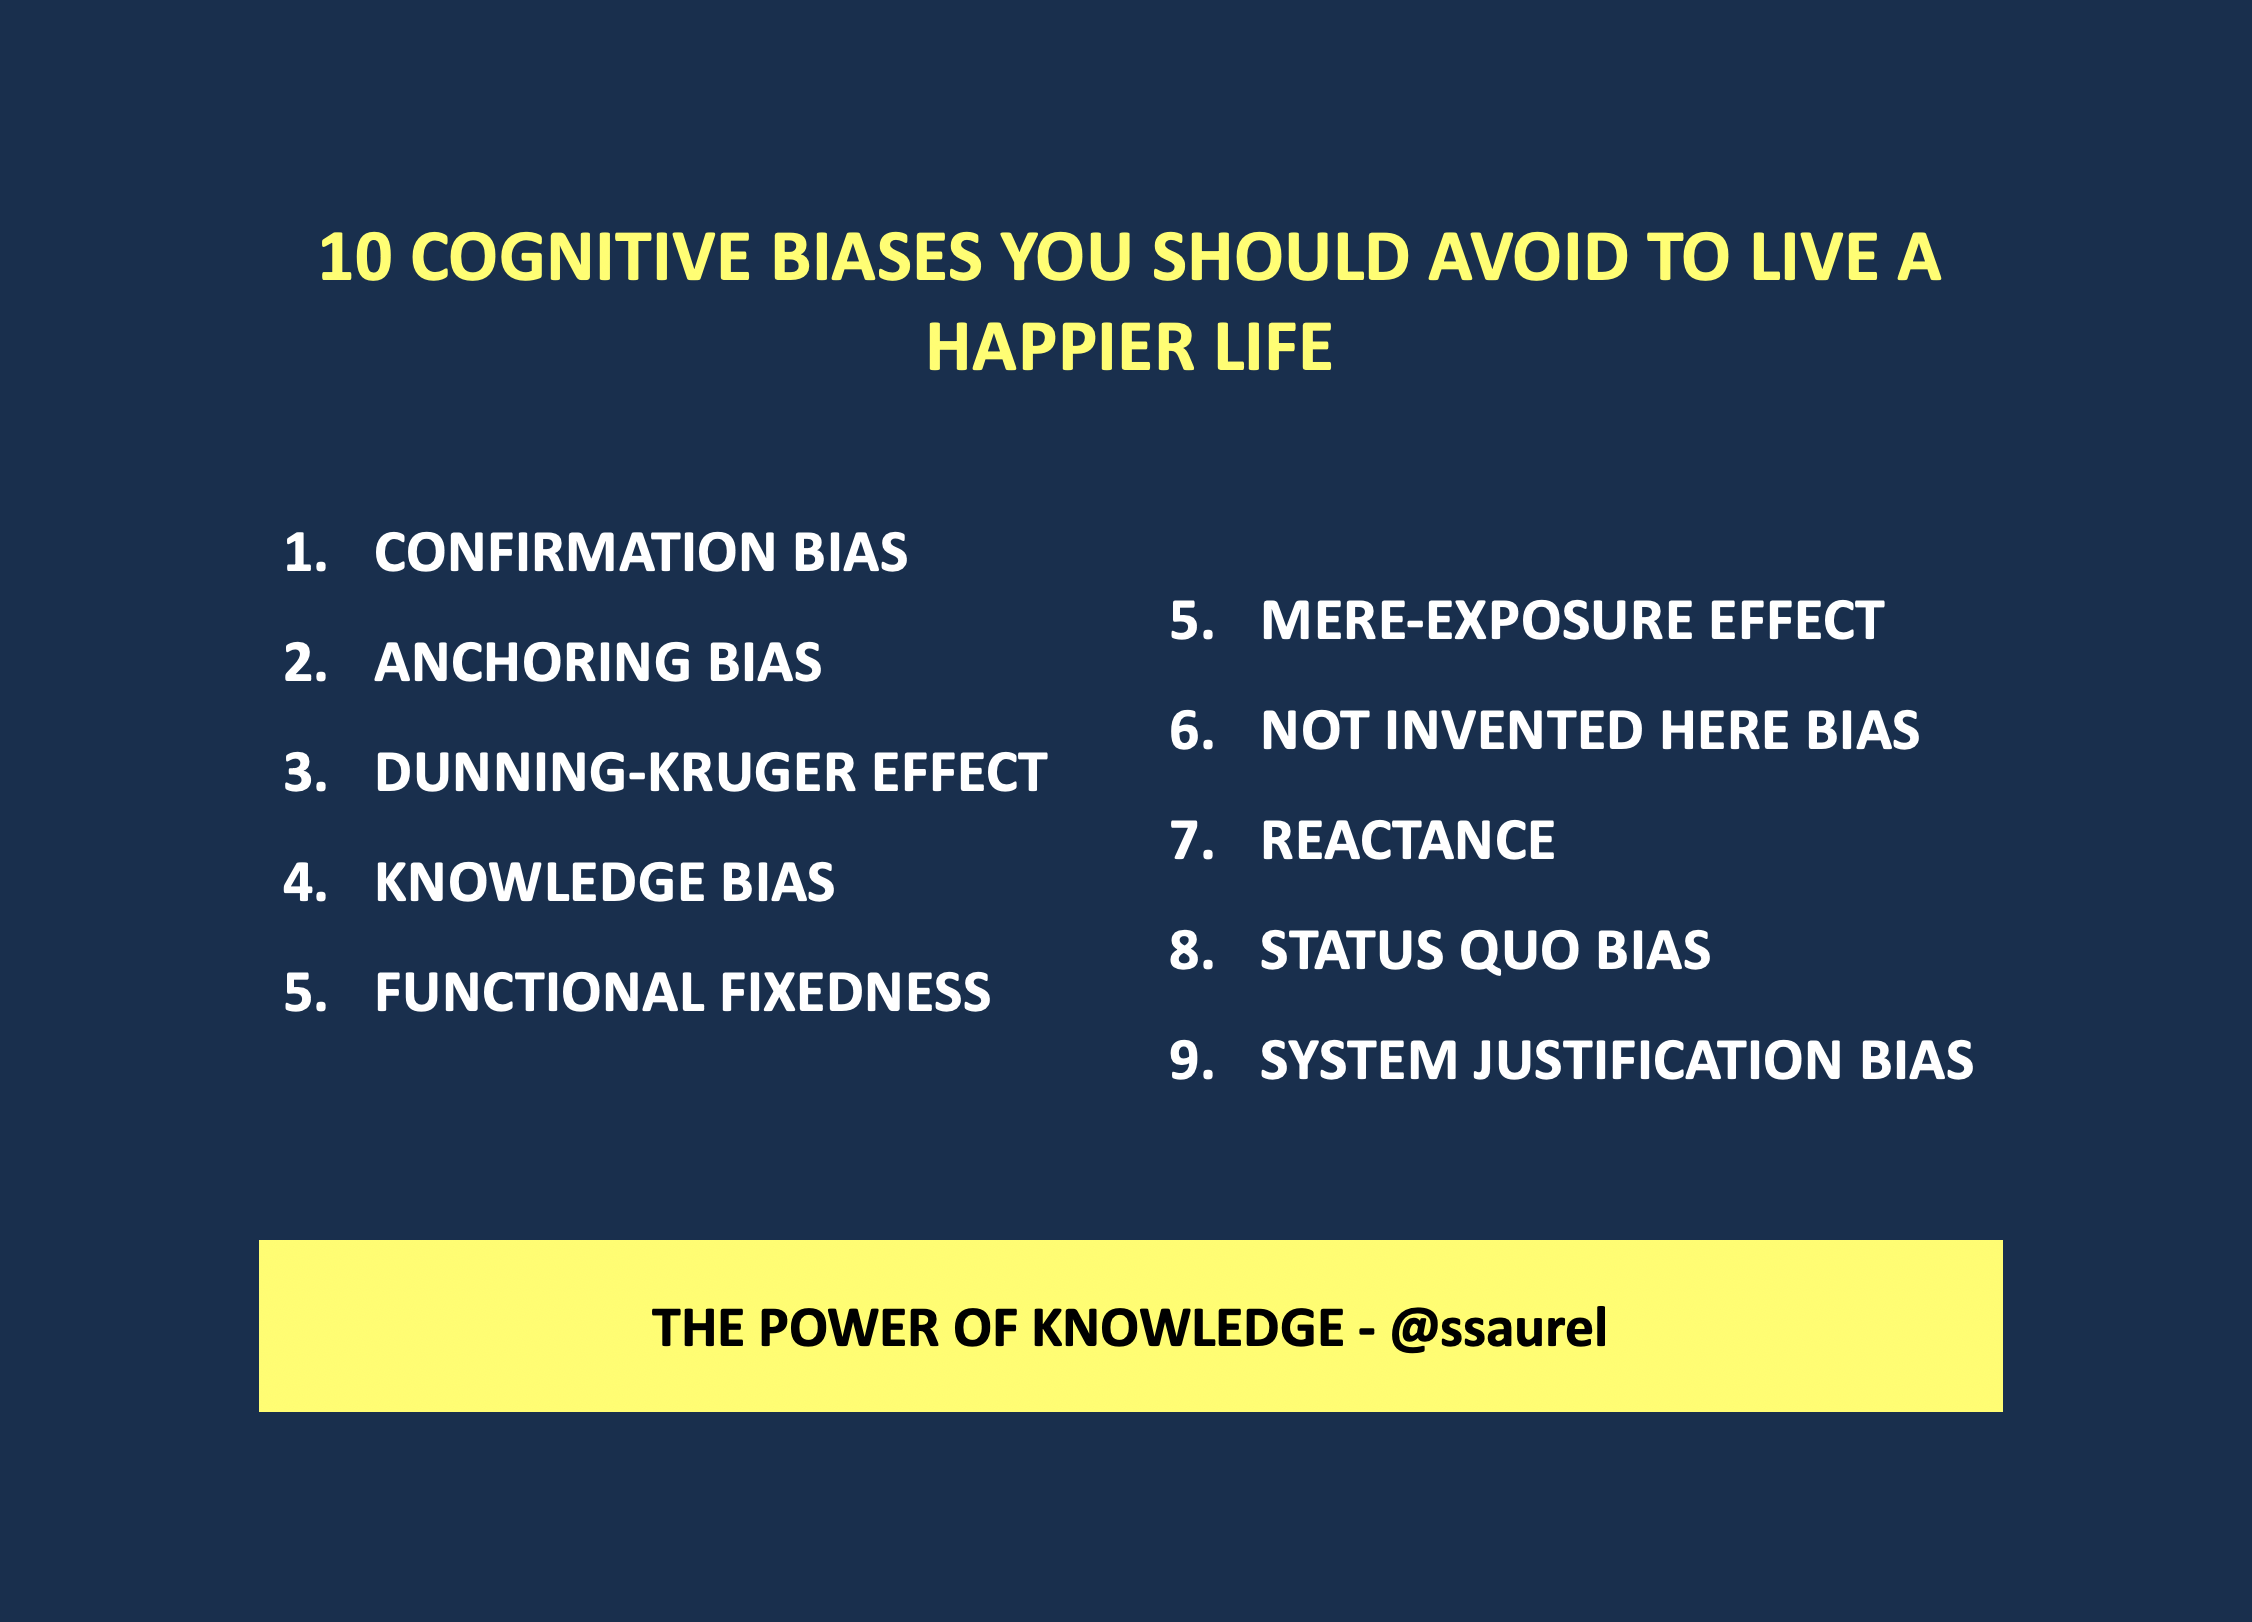 [Image] 10 Cognitive biases you should avoid to live a happier life